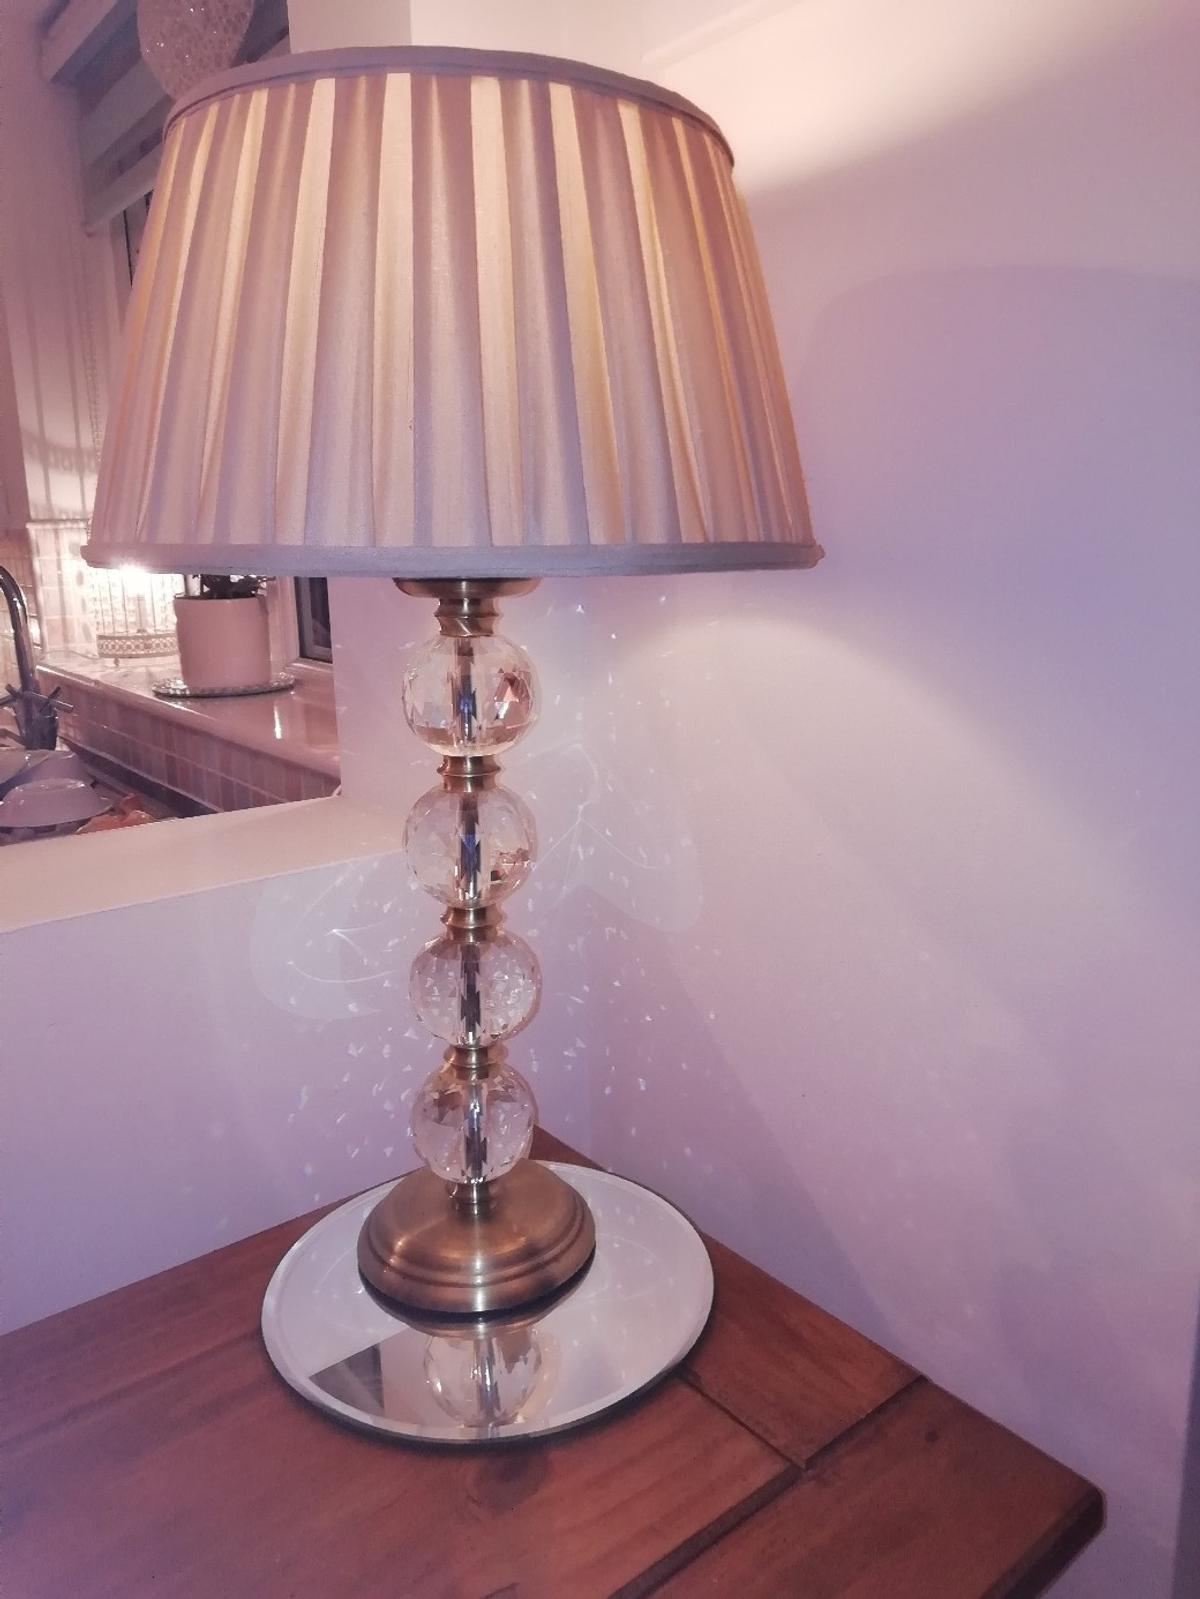 Crystal Table Lamp In Rh10 Crawley For 30 00 For Sale Shpock